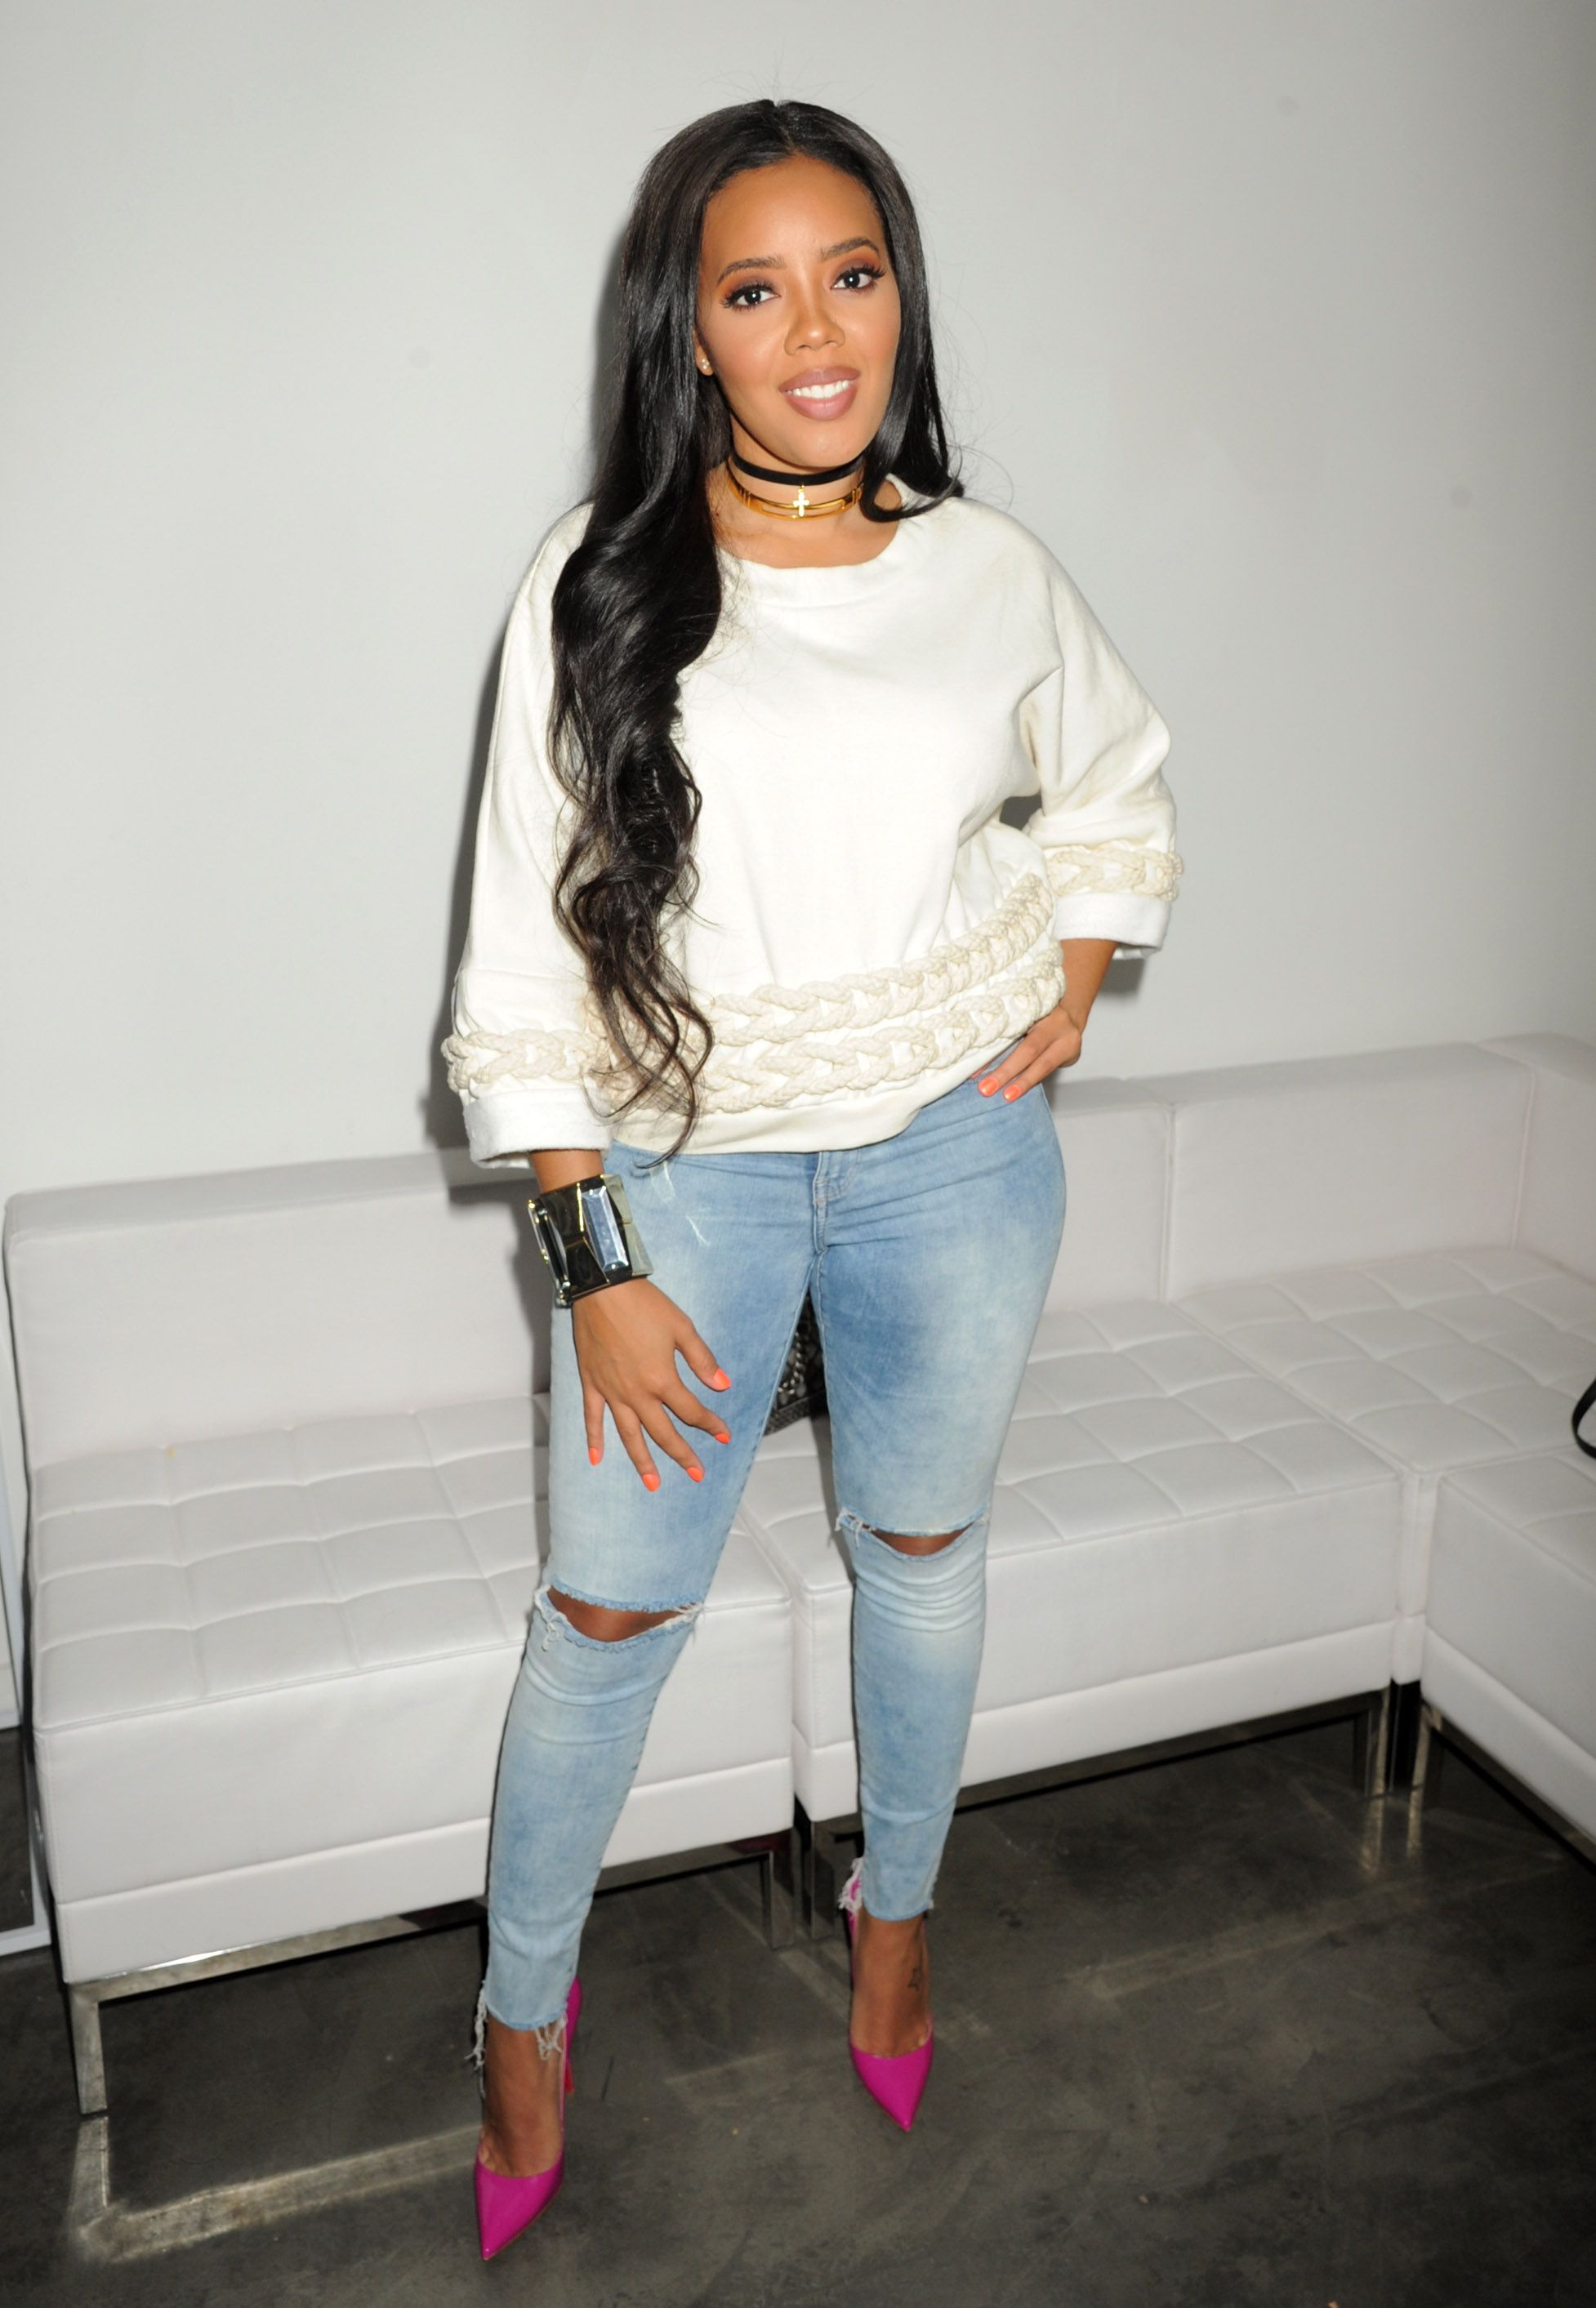 Angela Simmons Is Pregnant With Her First Child U2014 See Her Baby Bump!